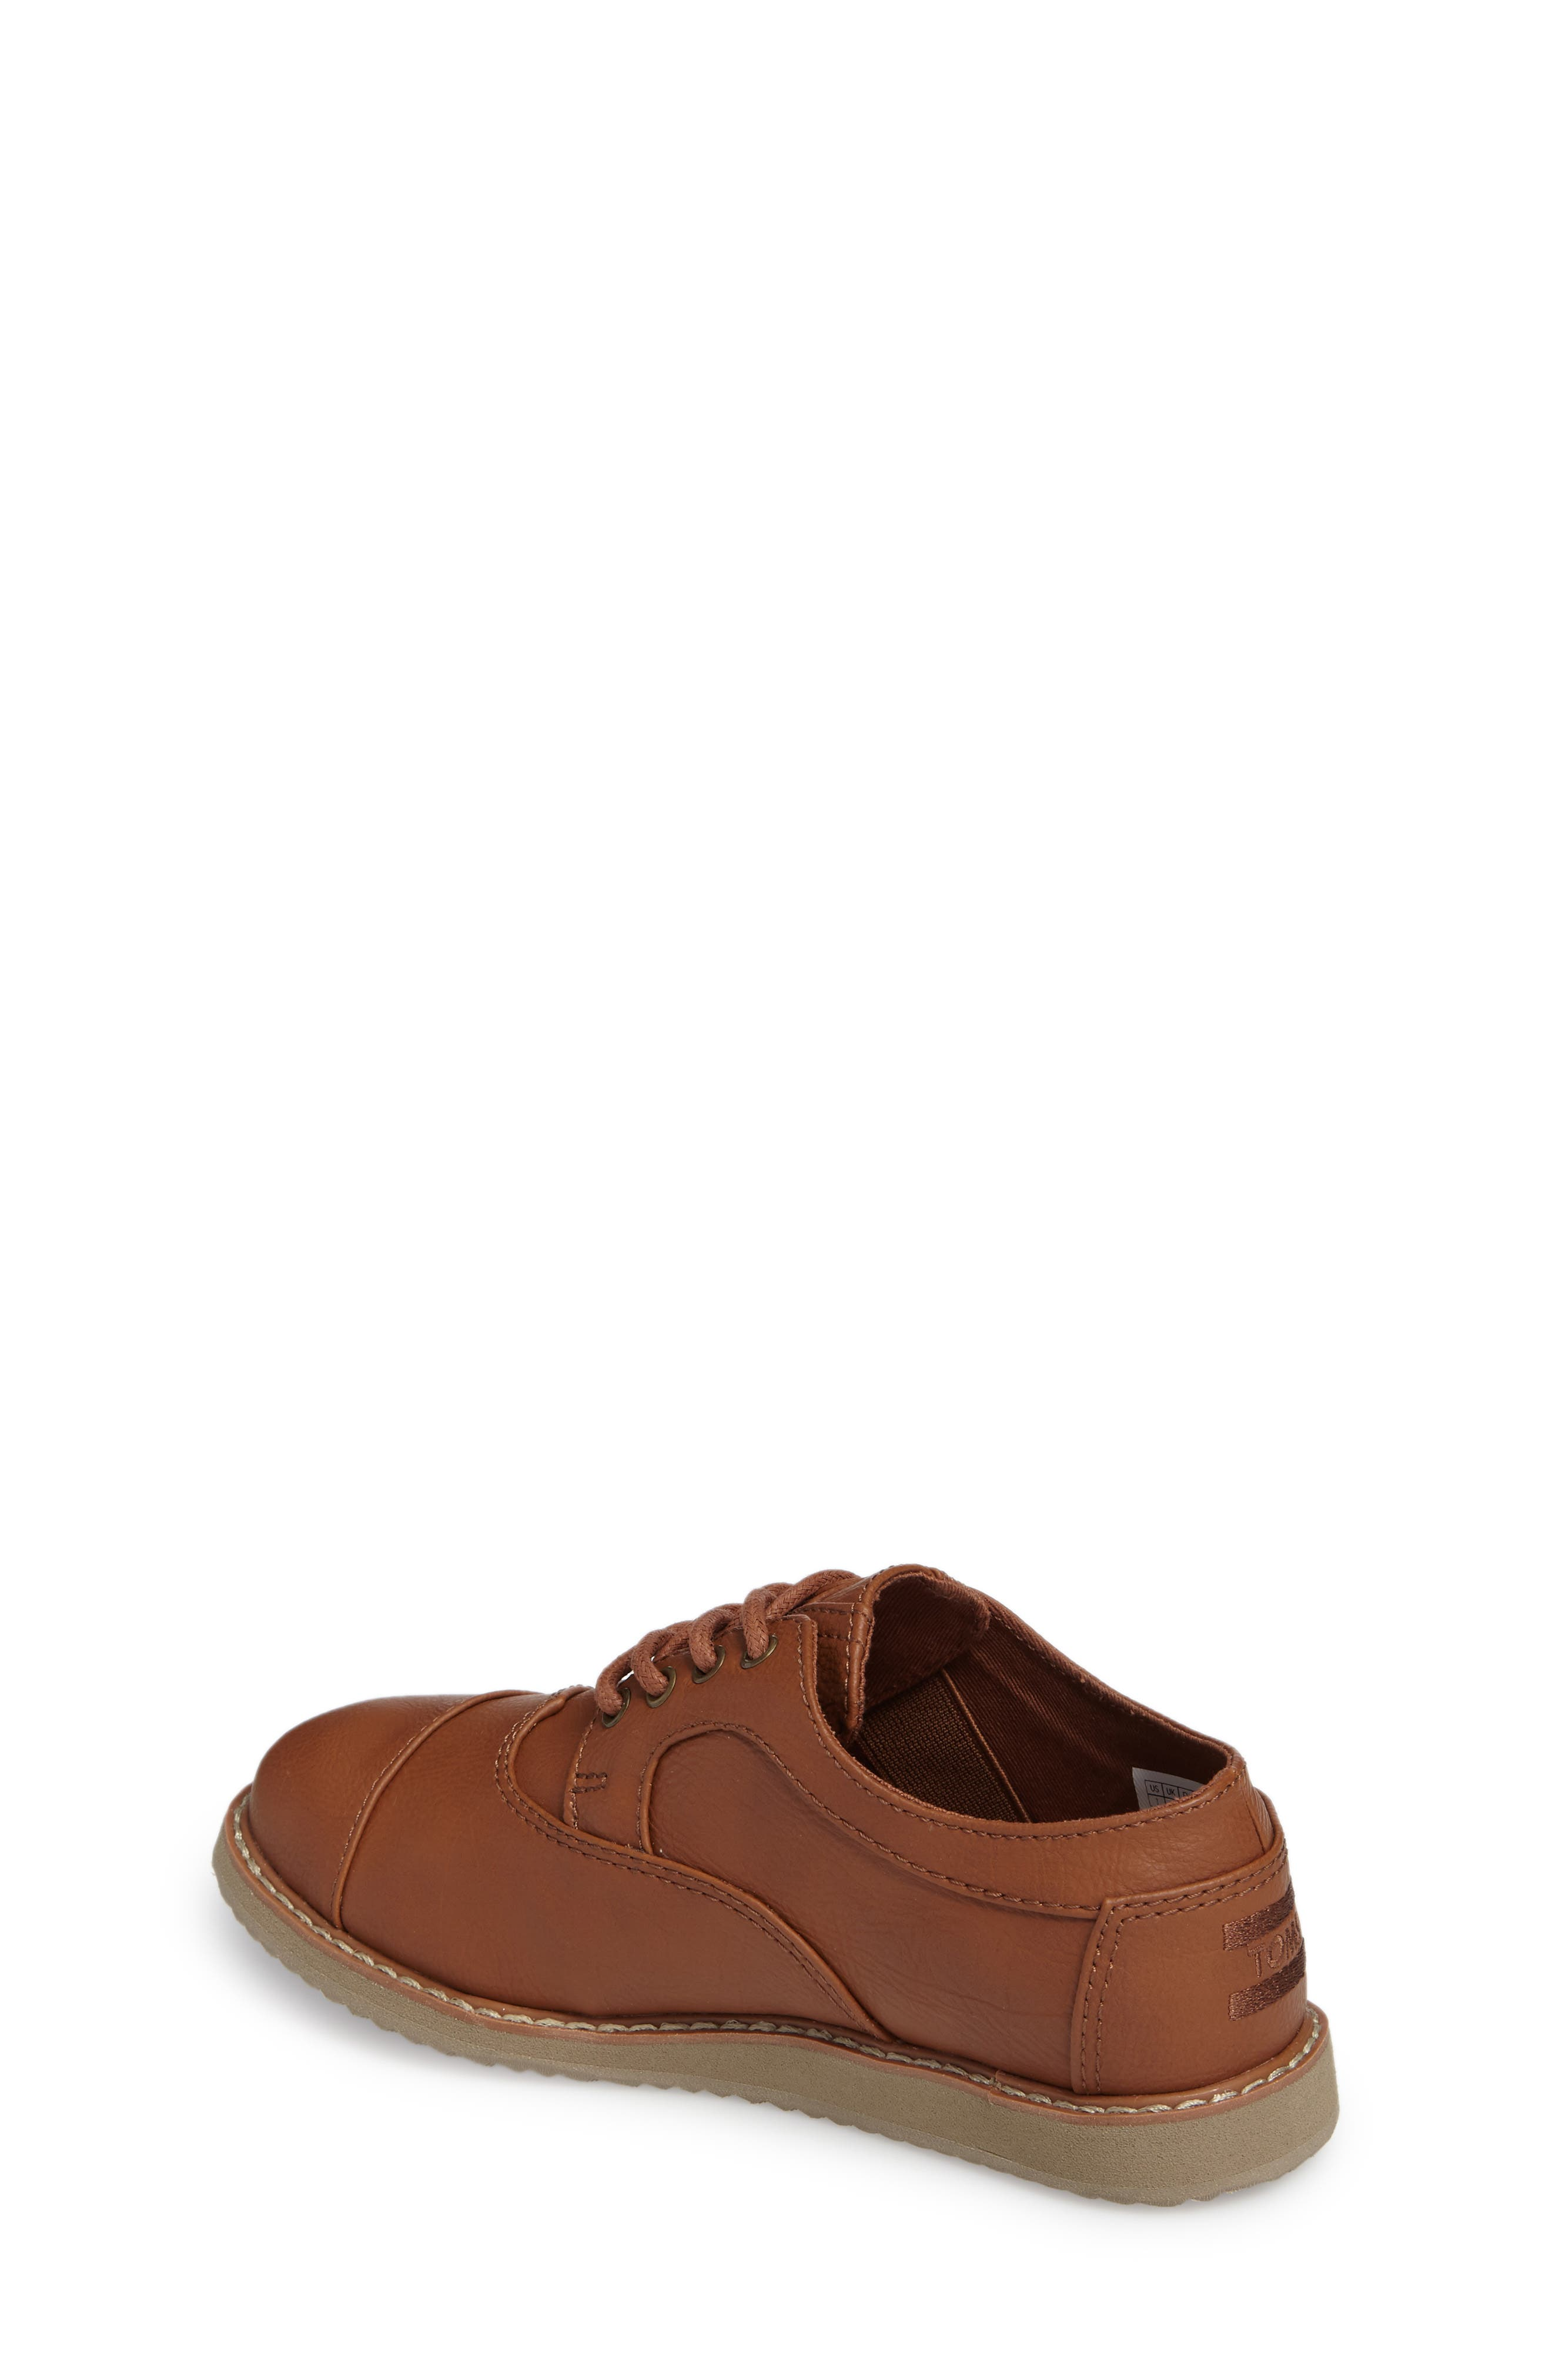 Brogue Cap Toe Wingtip Oxford,                             Alternate thumbnail 2, color,                             TOFFEE